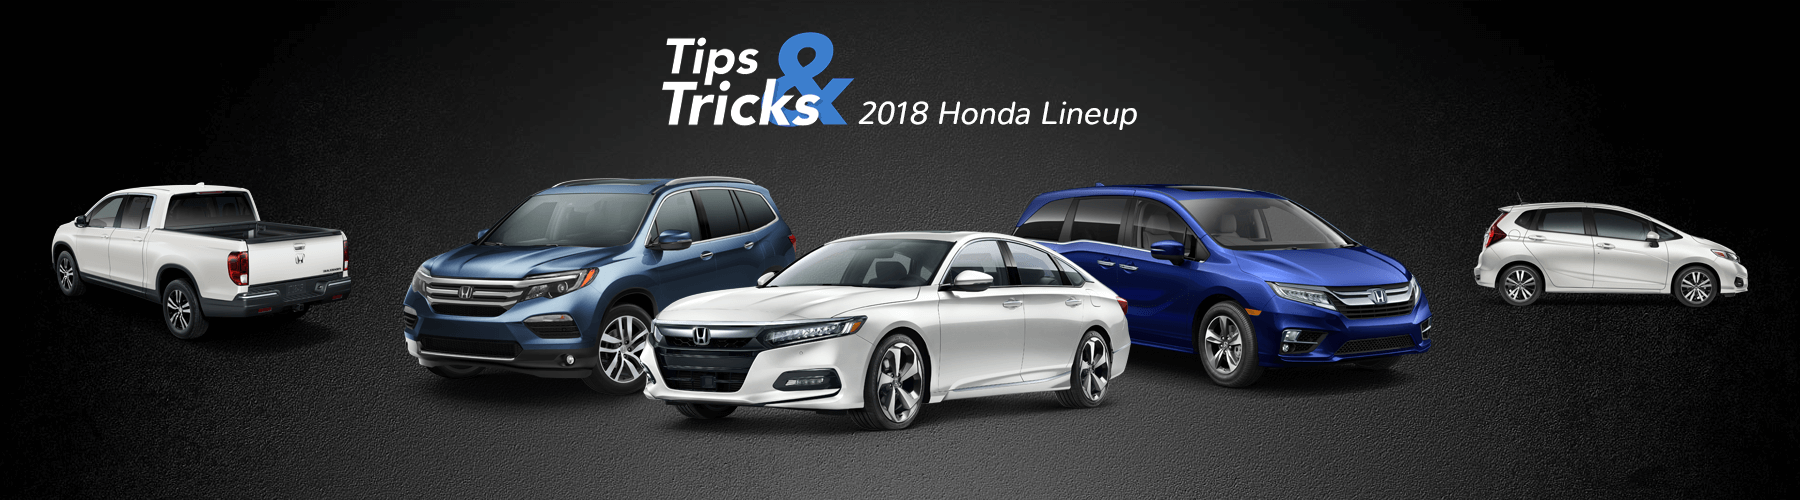 Honda Tips And Tricks Banner ...